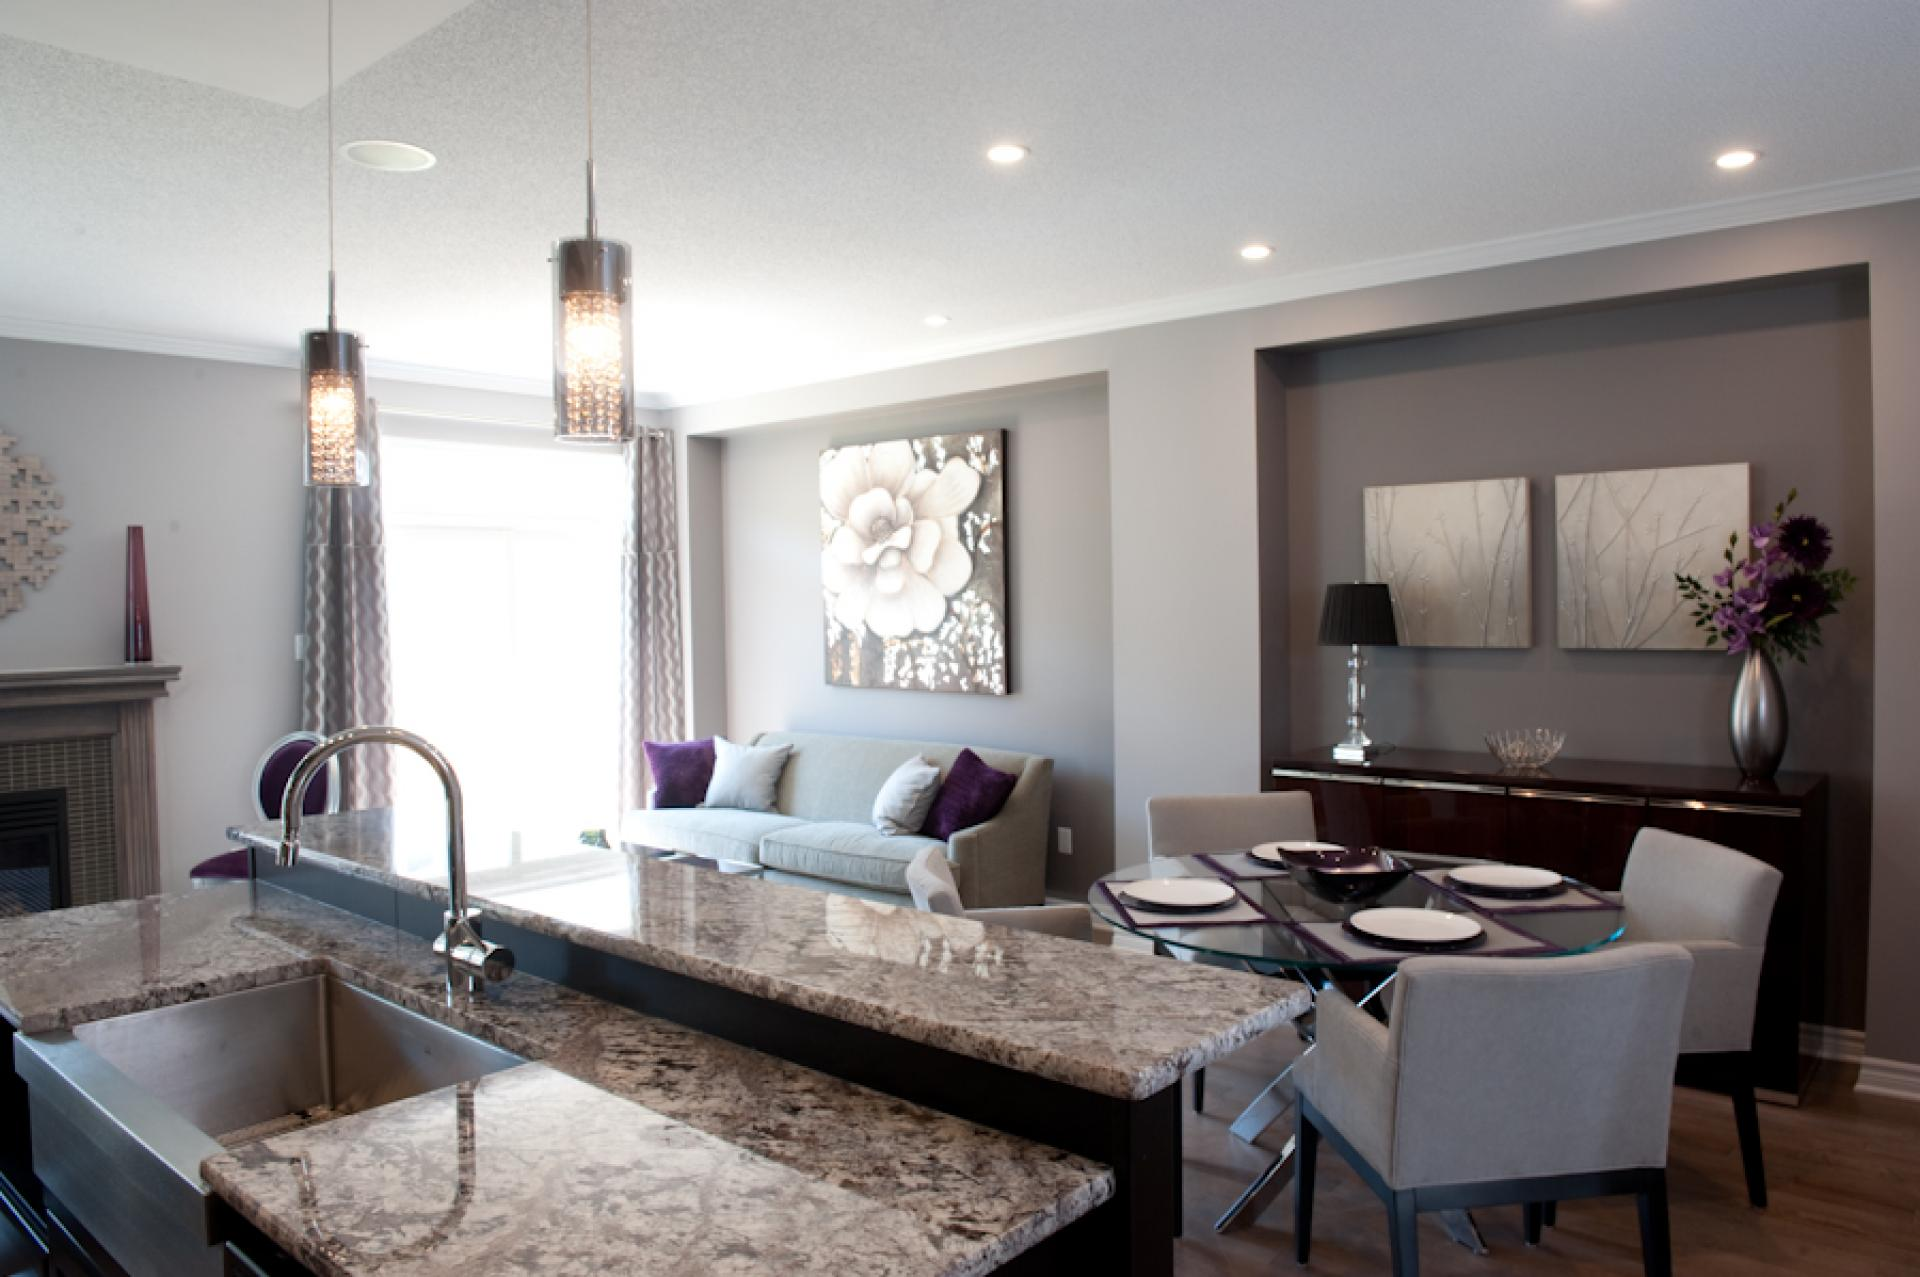 Huntington 3 Bedroom New Townhome Ottawa New Townhomes For Sale # Muebles Fairmont